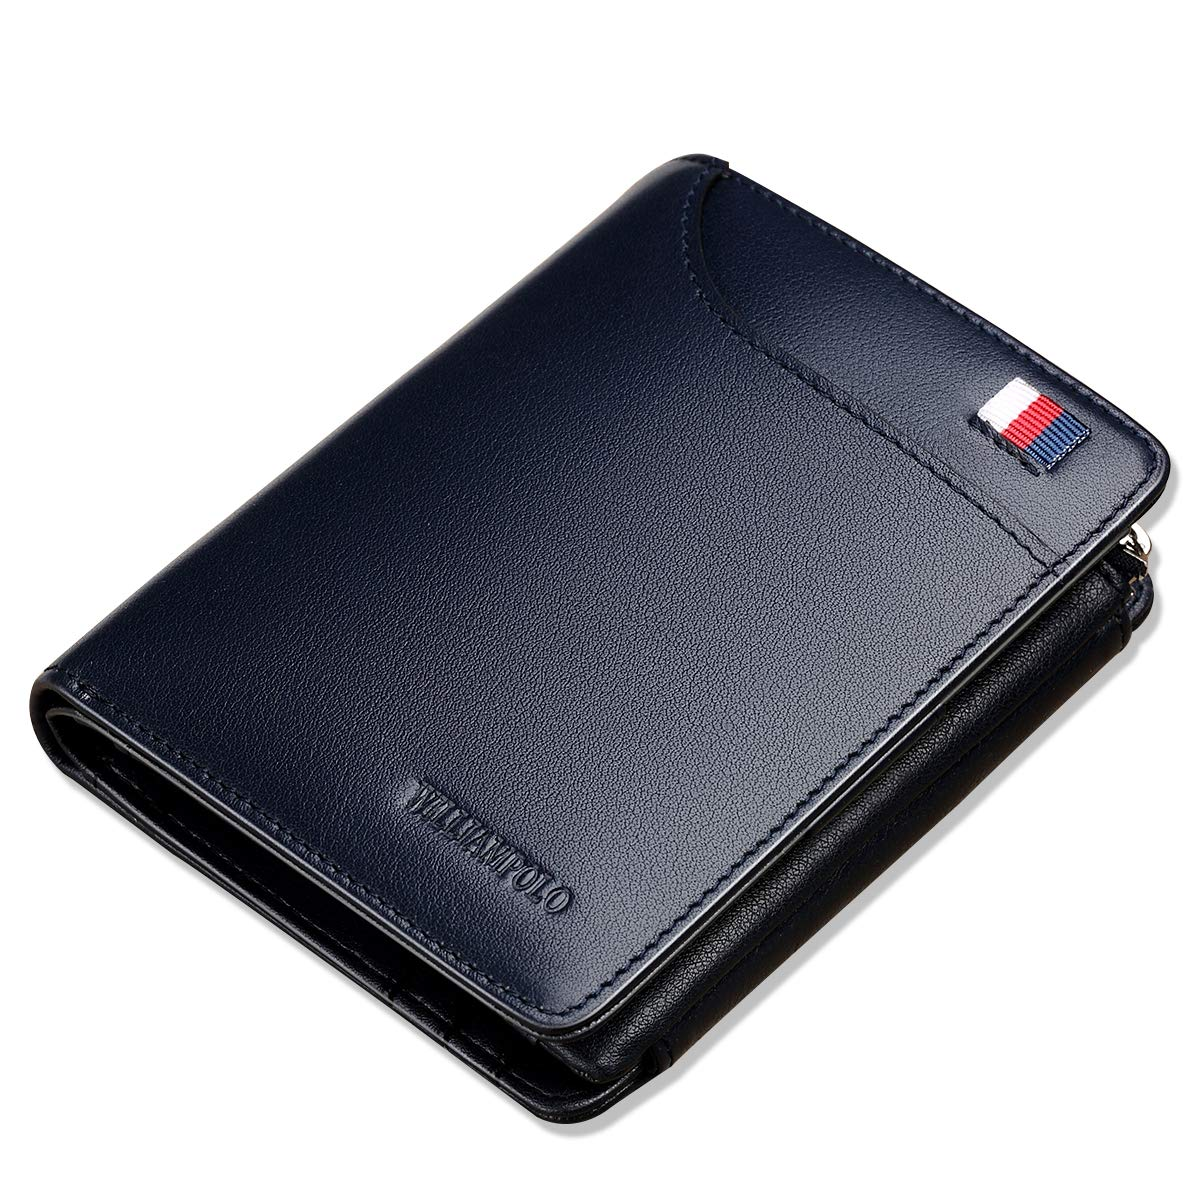 Mini Slim Wallet Driver License ID Organizer Credit Card Holder Case Xmas Gift